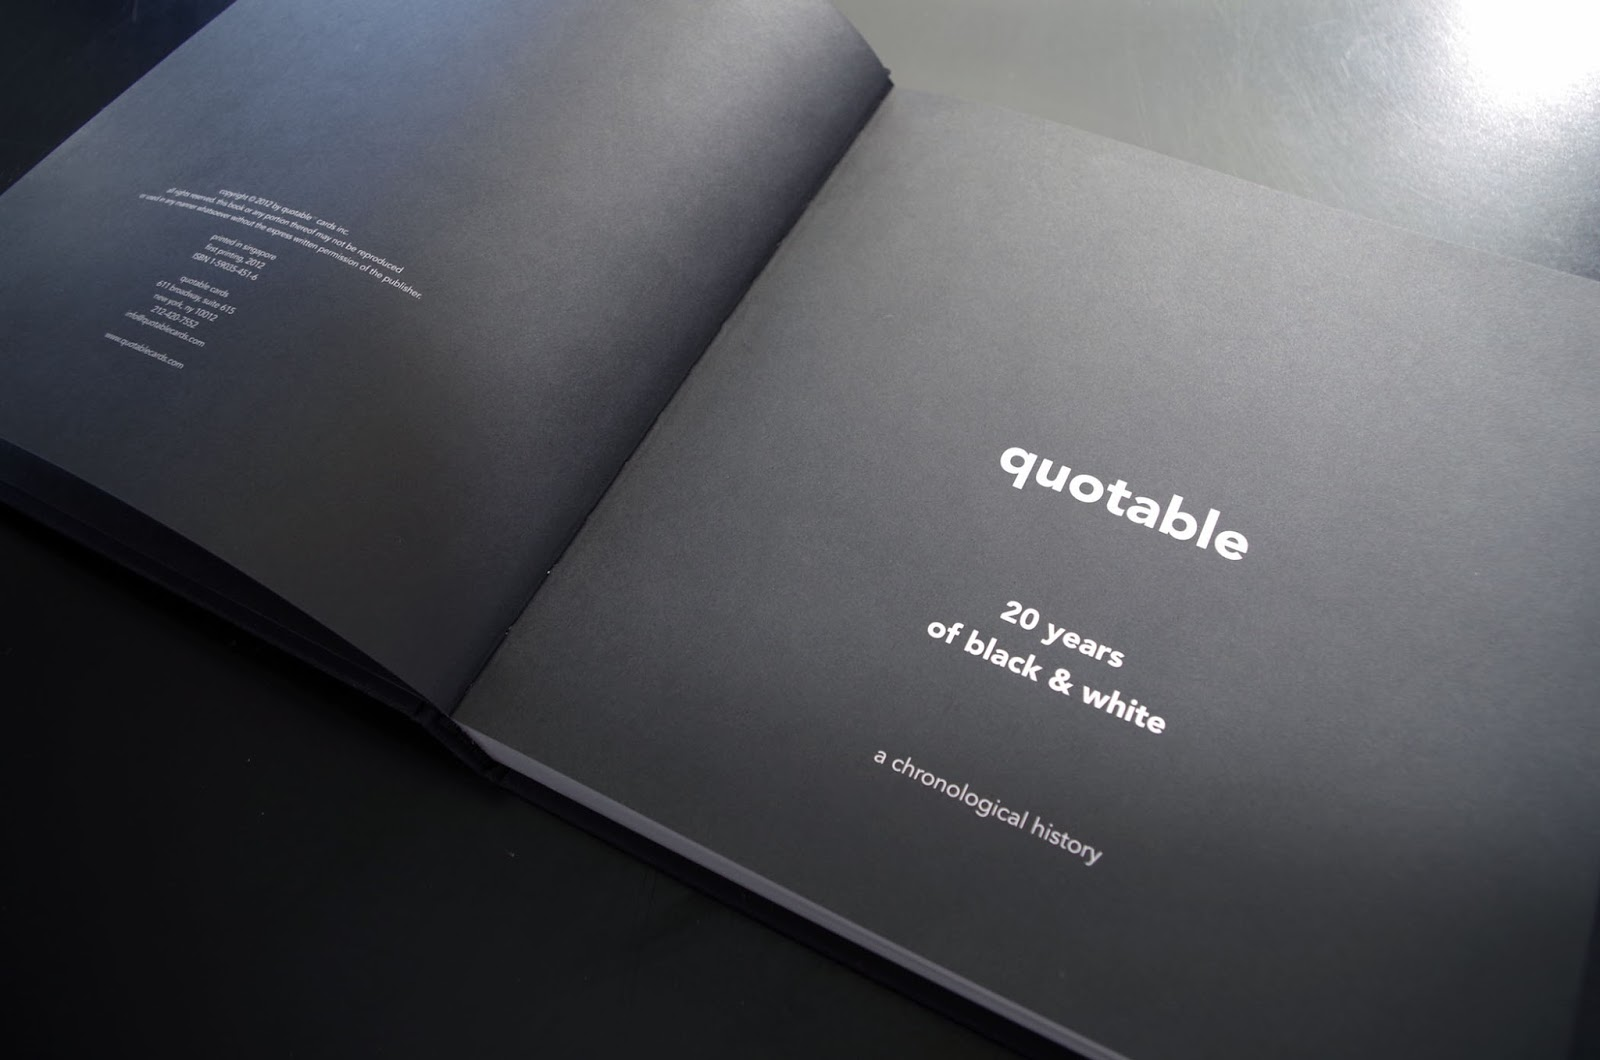 Monica emmons award winning book quotable 20 years of black white 2013 international book award winner for best design this 200 page coffee table book is graphically heavy and showcases quotables 200 best greeting card kristyandbryce Image collections